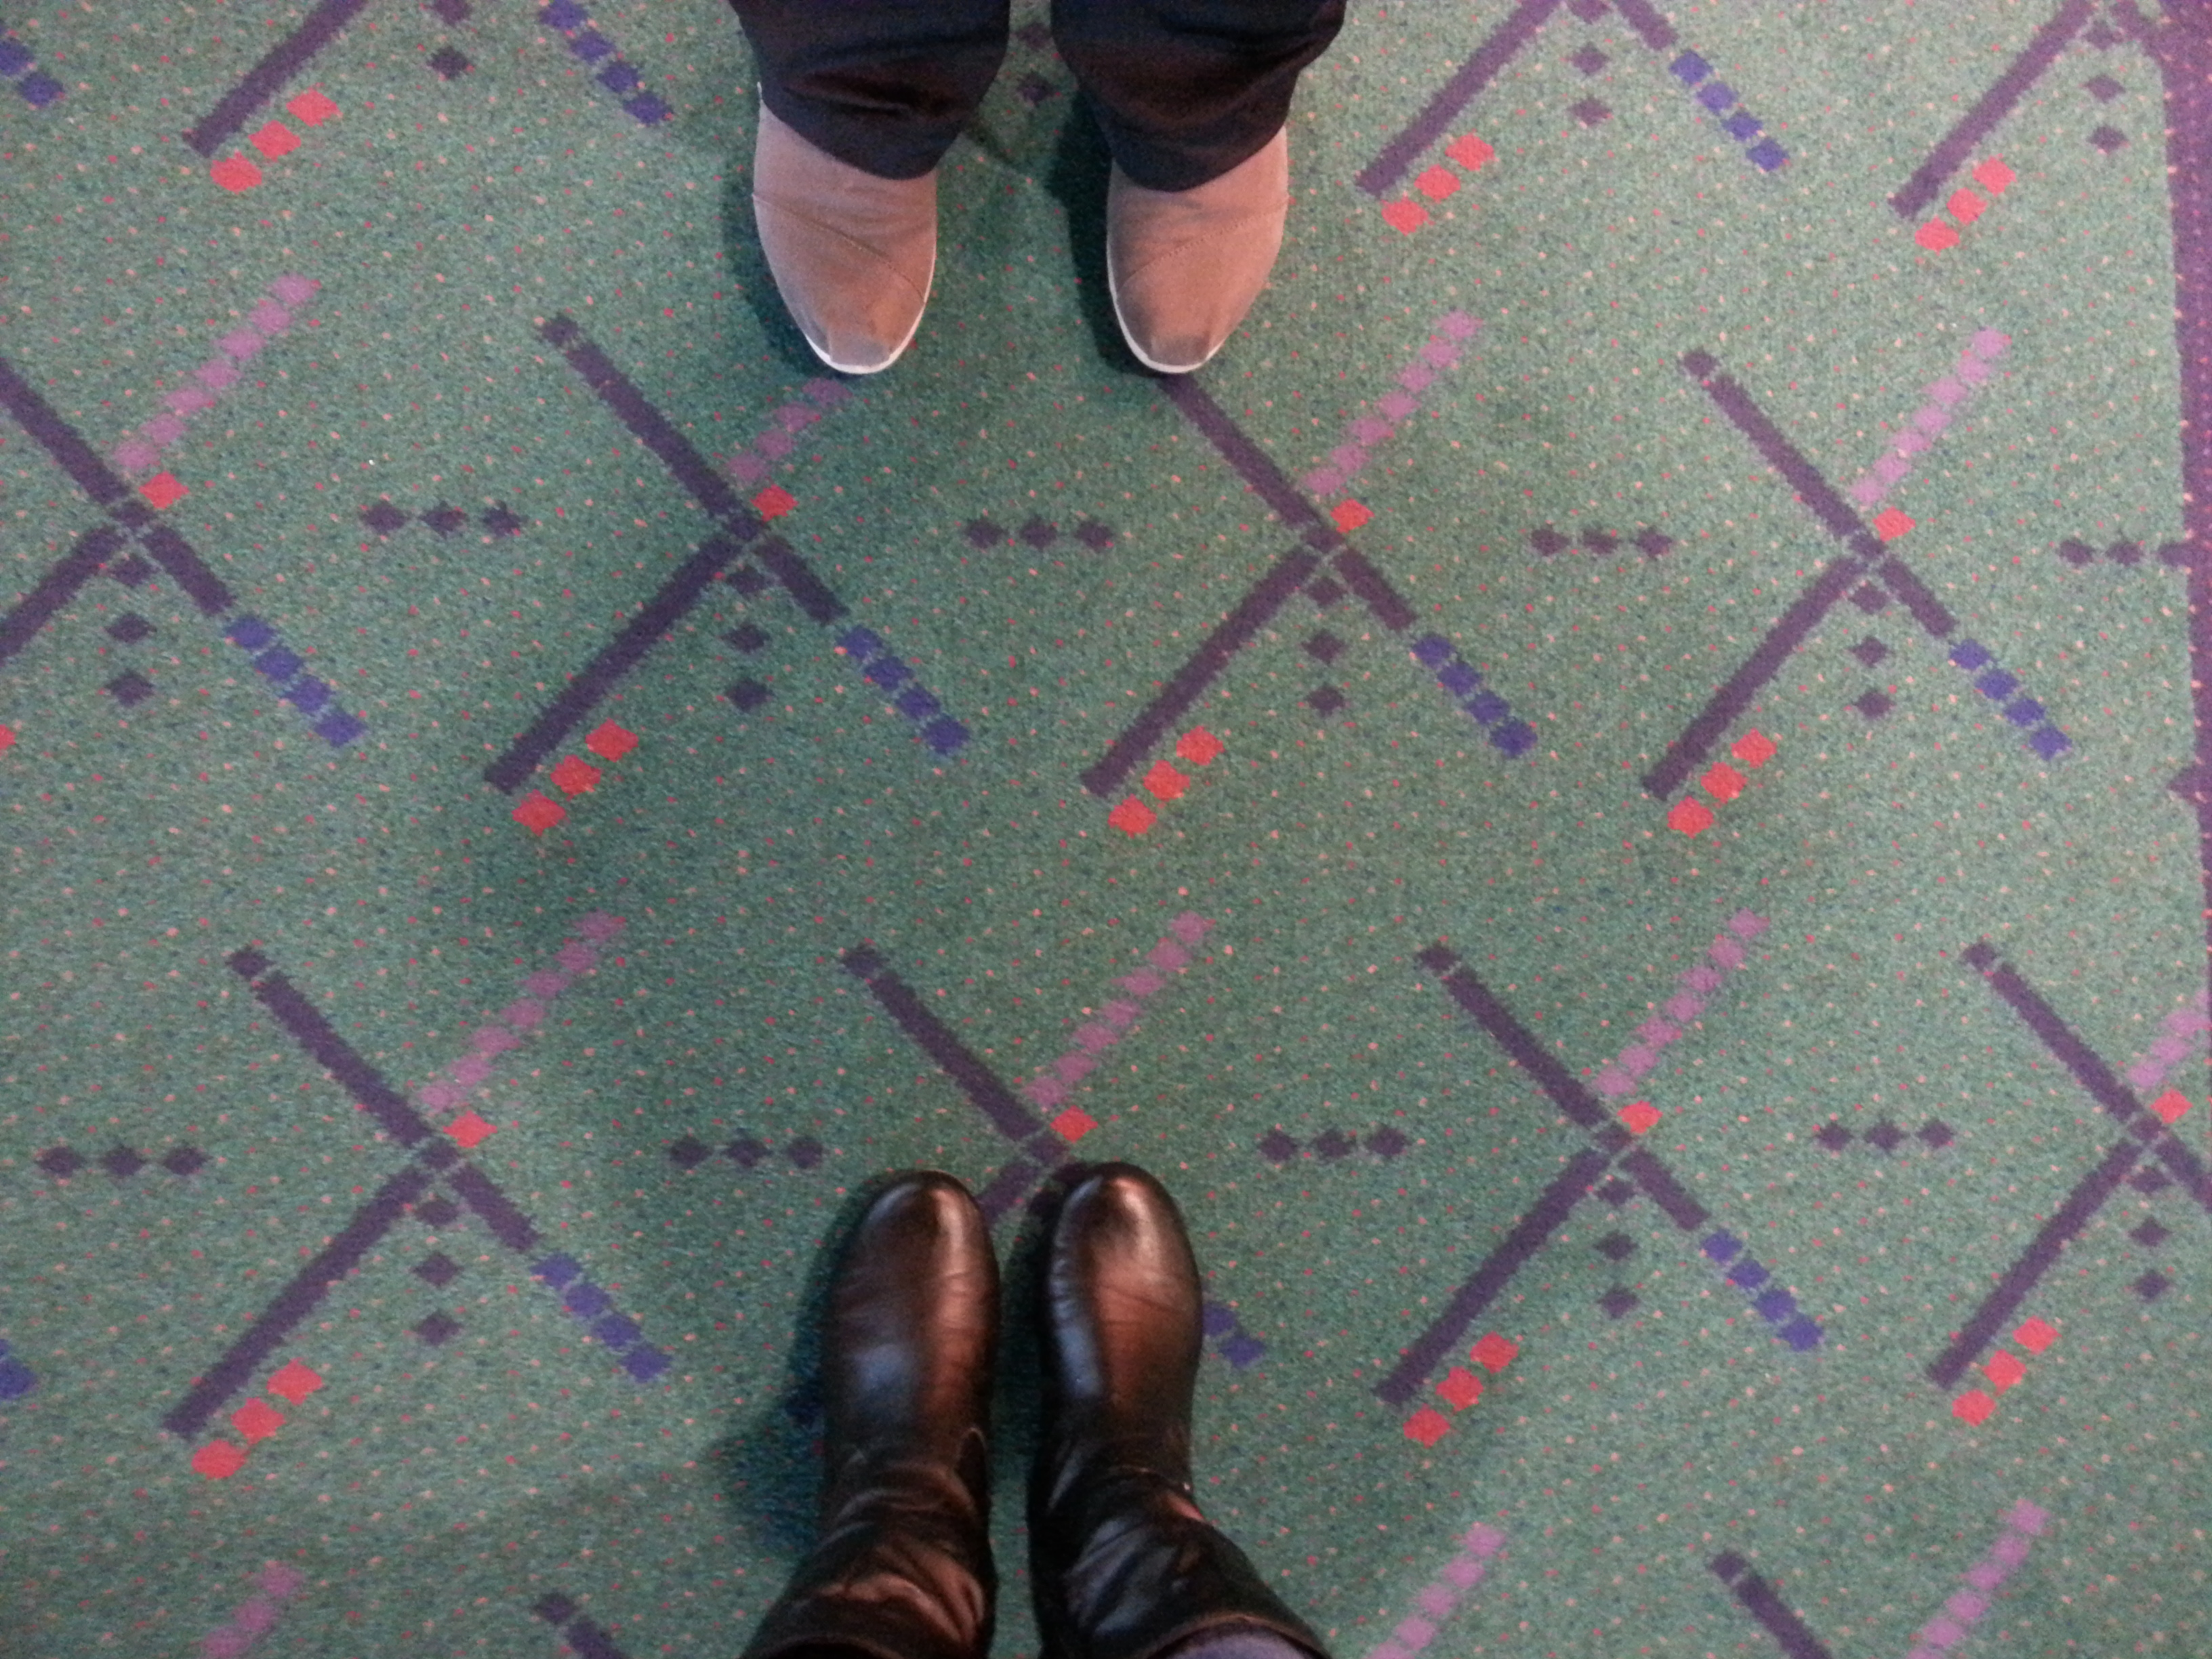 Time for final #pdxcarpet selfies